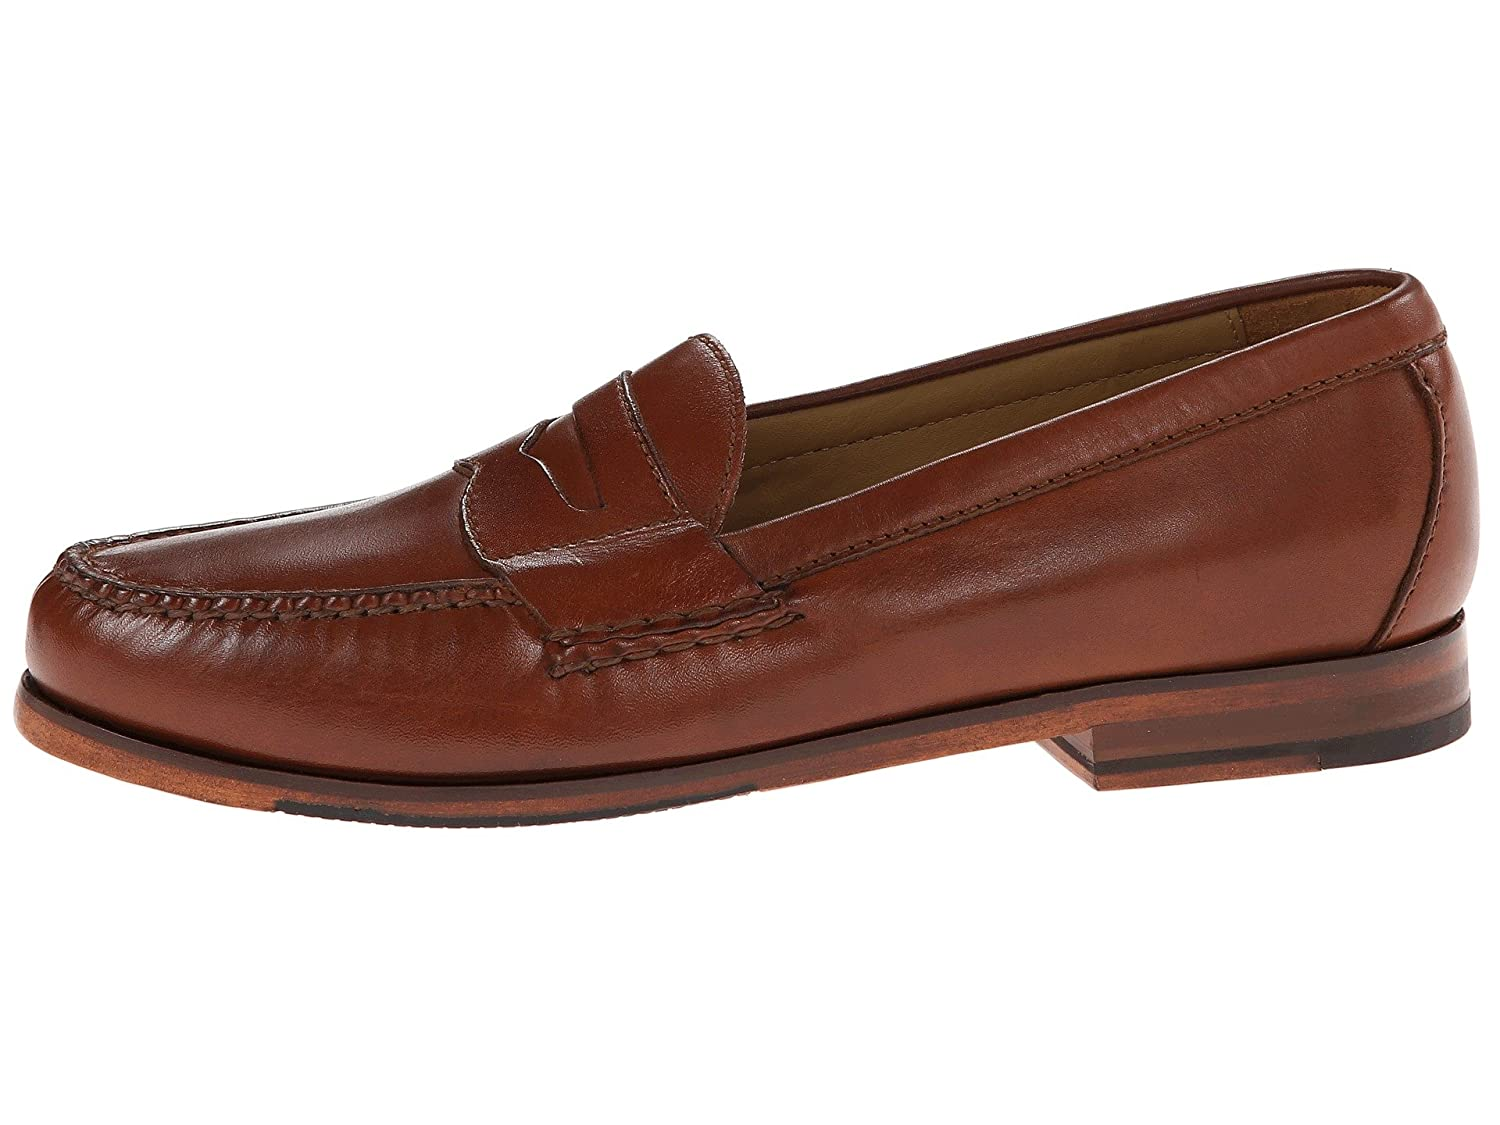 6865534bcf2 80%OFF Cole Haan Pinch Grand Penny Men s Loafer - asianaroma.ee